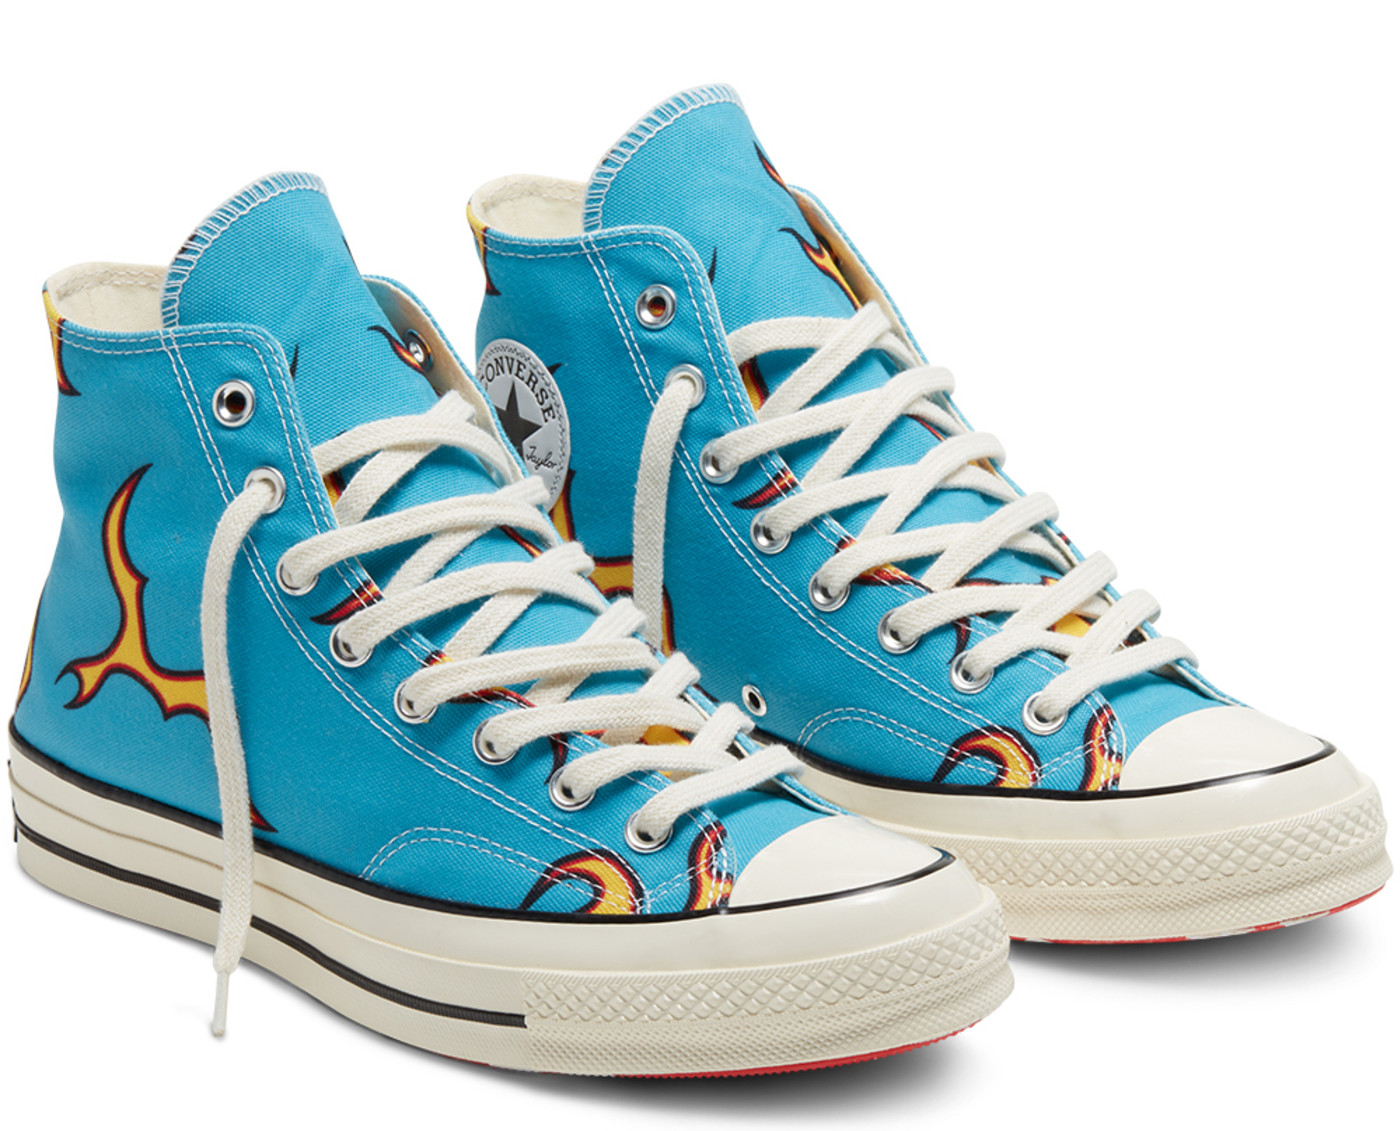 tyler-the-creator-golf-wang-converse-chuck-70-flames-pair